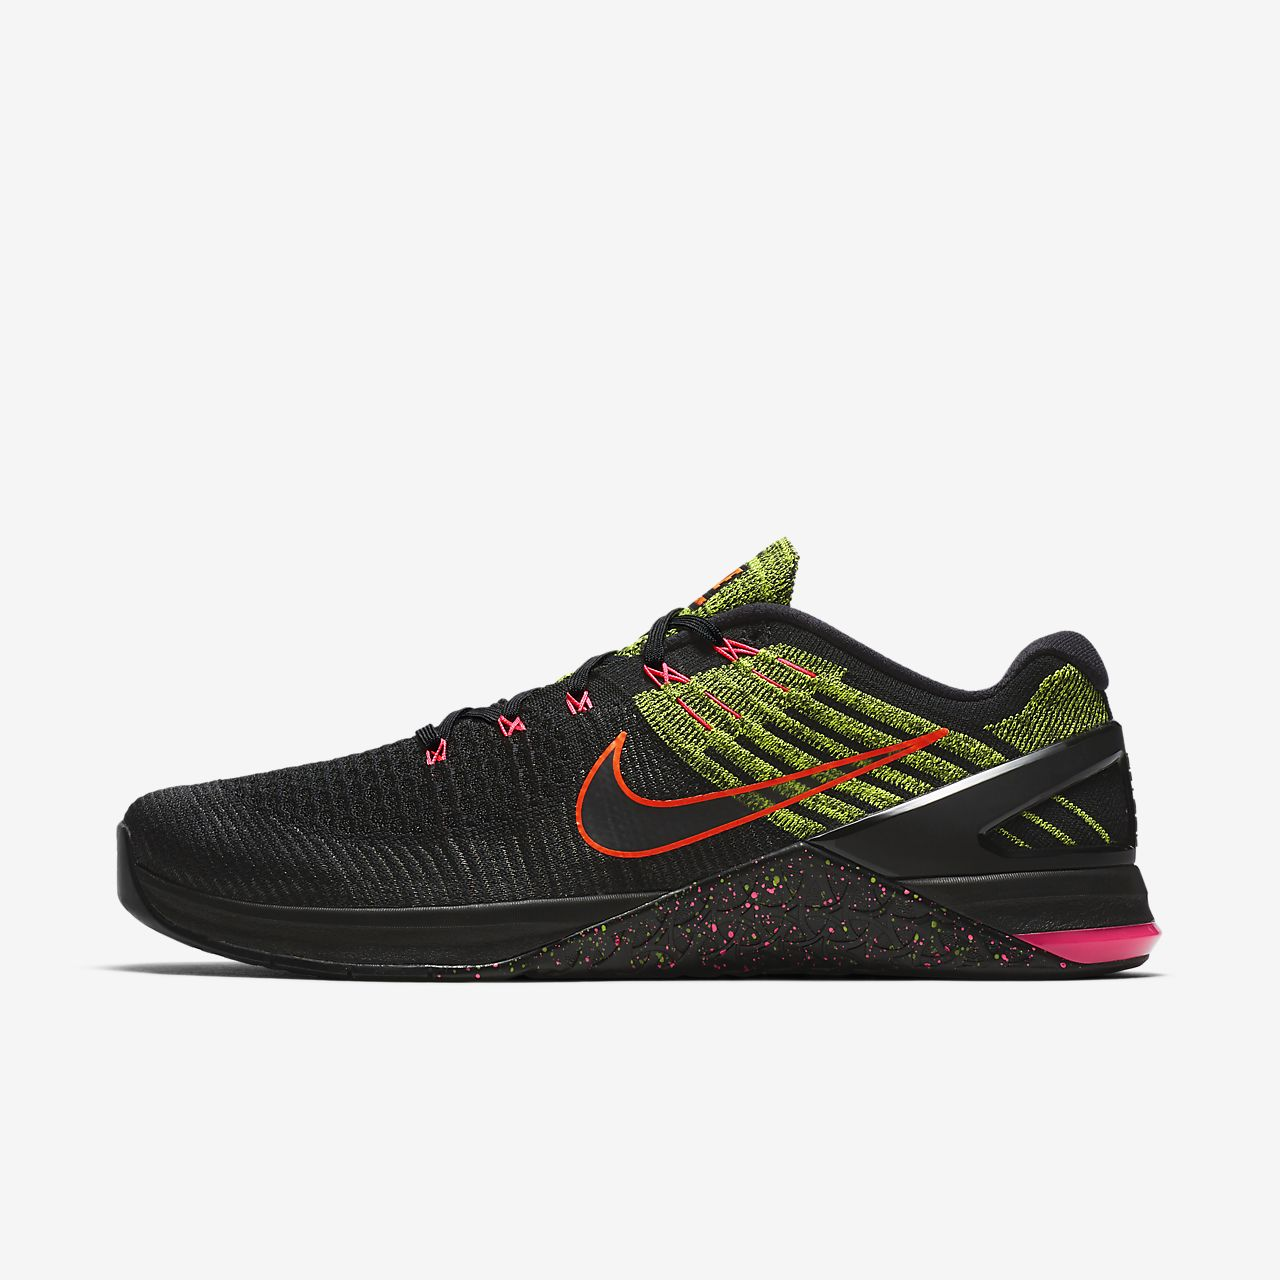 cfc0297cabfb Nike Metcon DSX Flyknit Mens Training Shoe ...